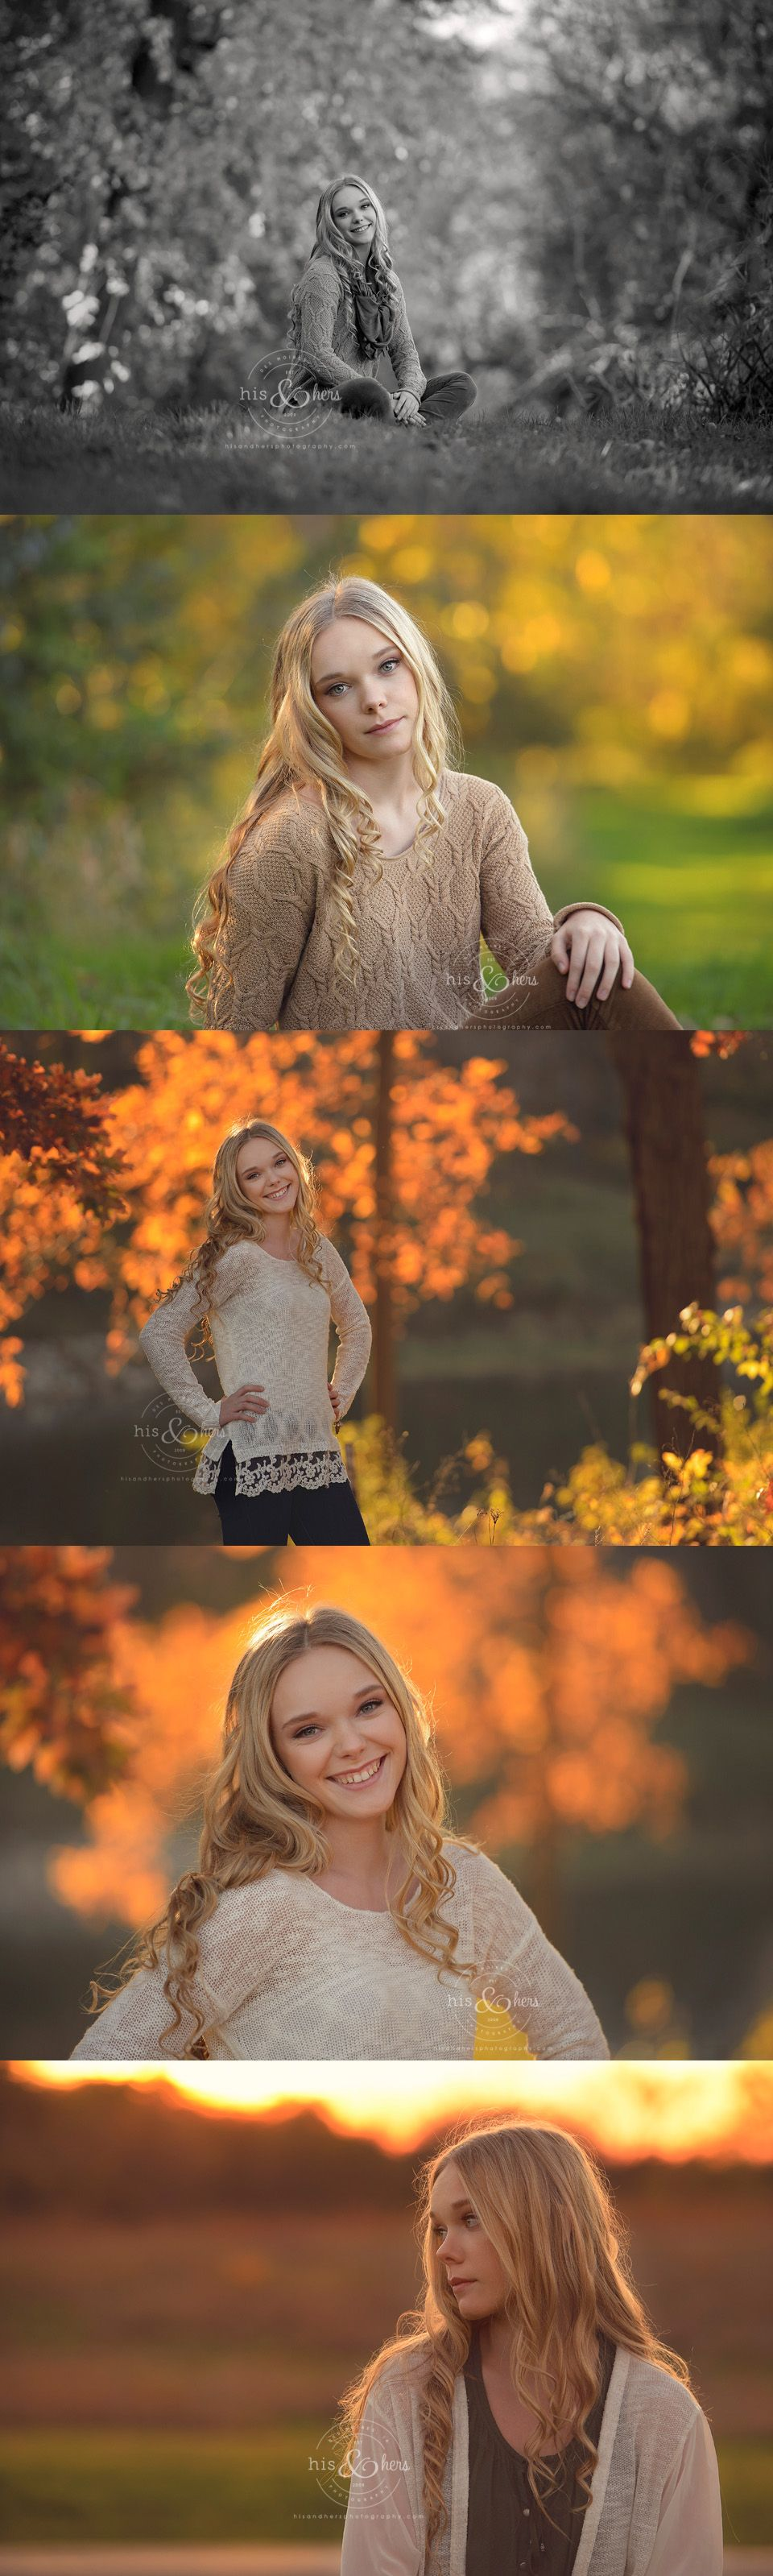 des moines iowa high school senior portraits senior pictures photographer photography studio